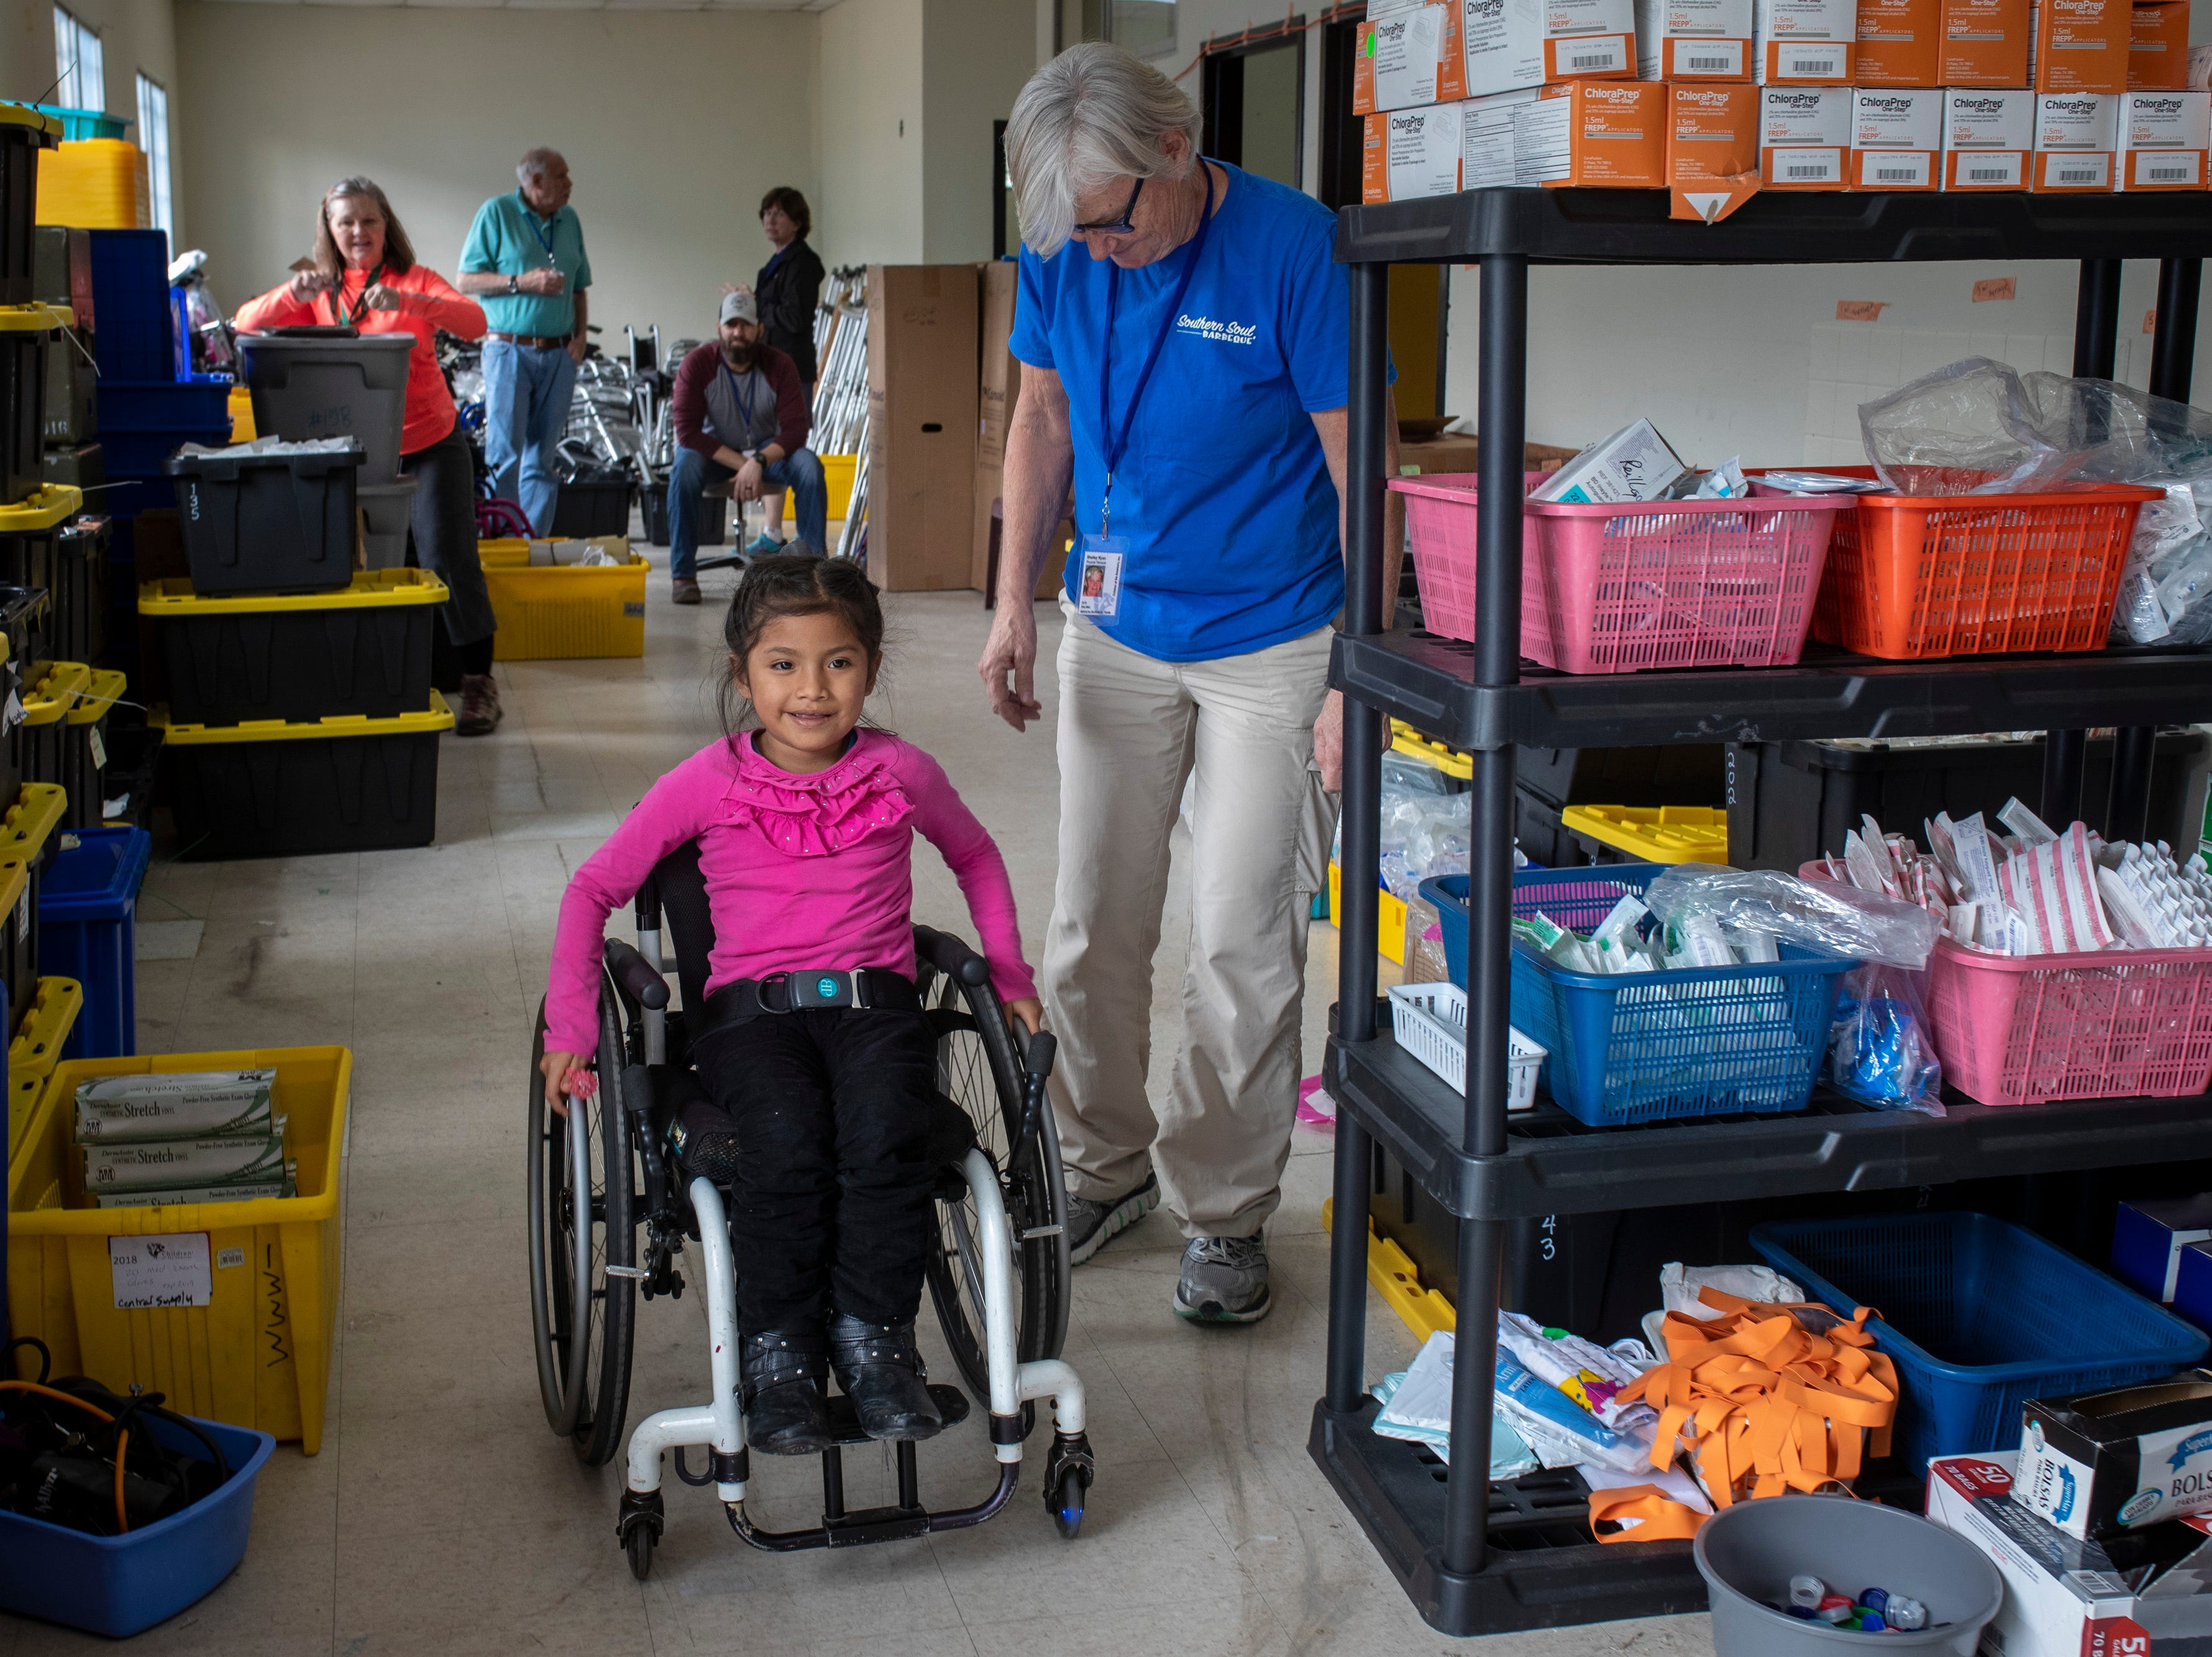 Suleimy Solima Garcia, 7, diagnosed with spina bifida, tries out her brand new wheelchair in the COTA storage area as physical therapist Shelley Ryan of Lexington, Kentucky looks on. Jan. 21, 2019